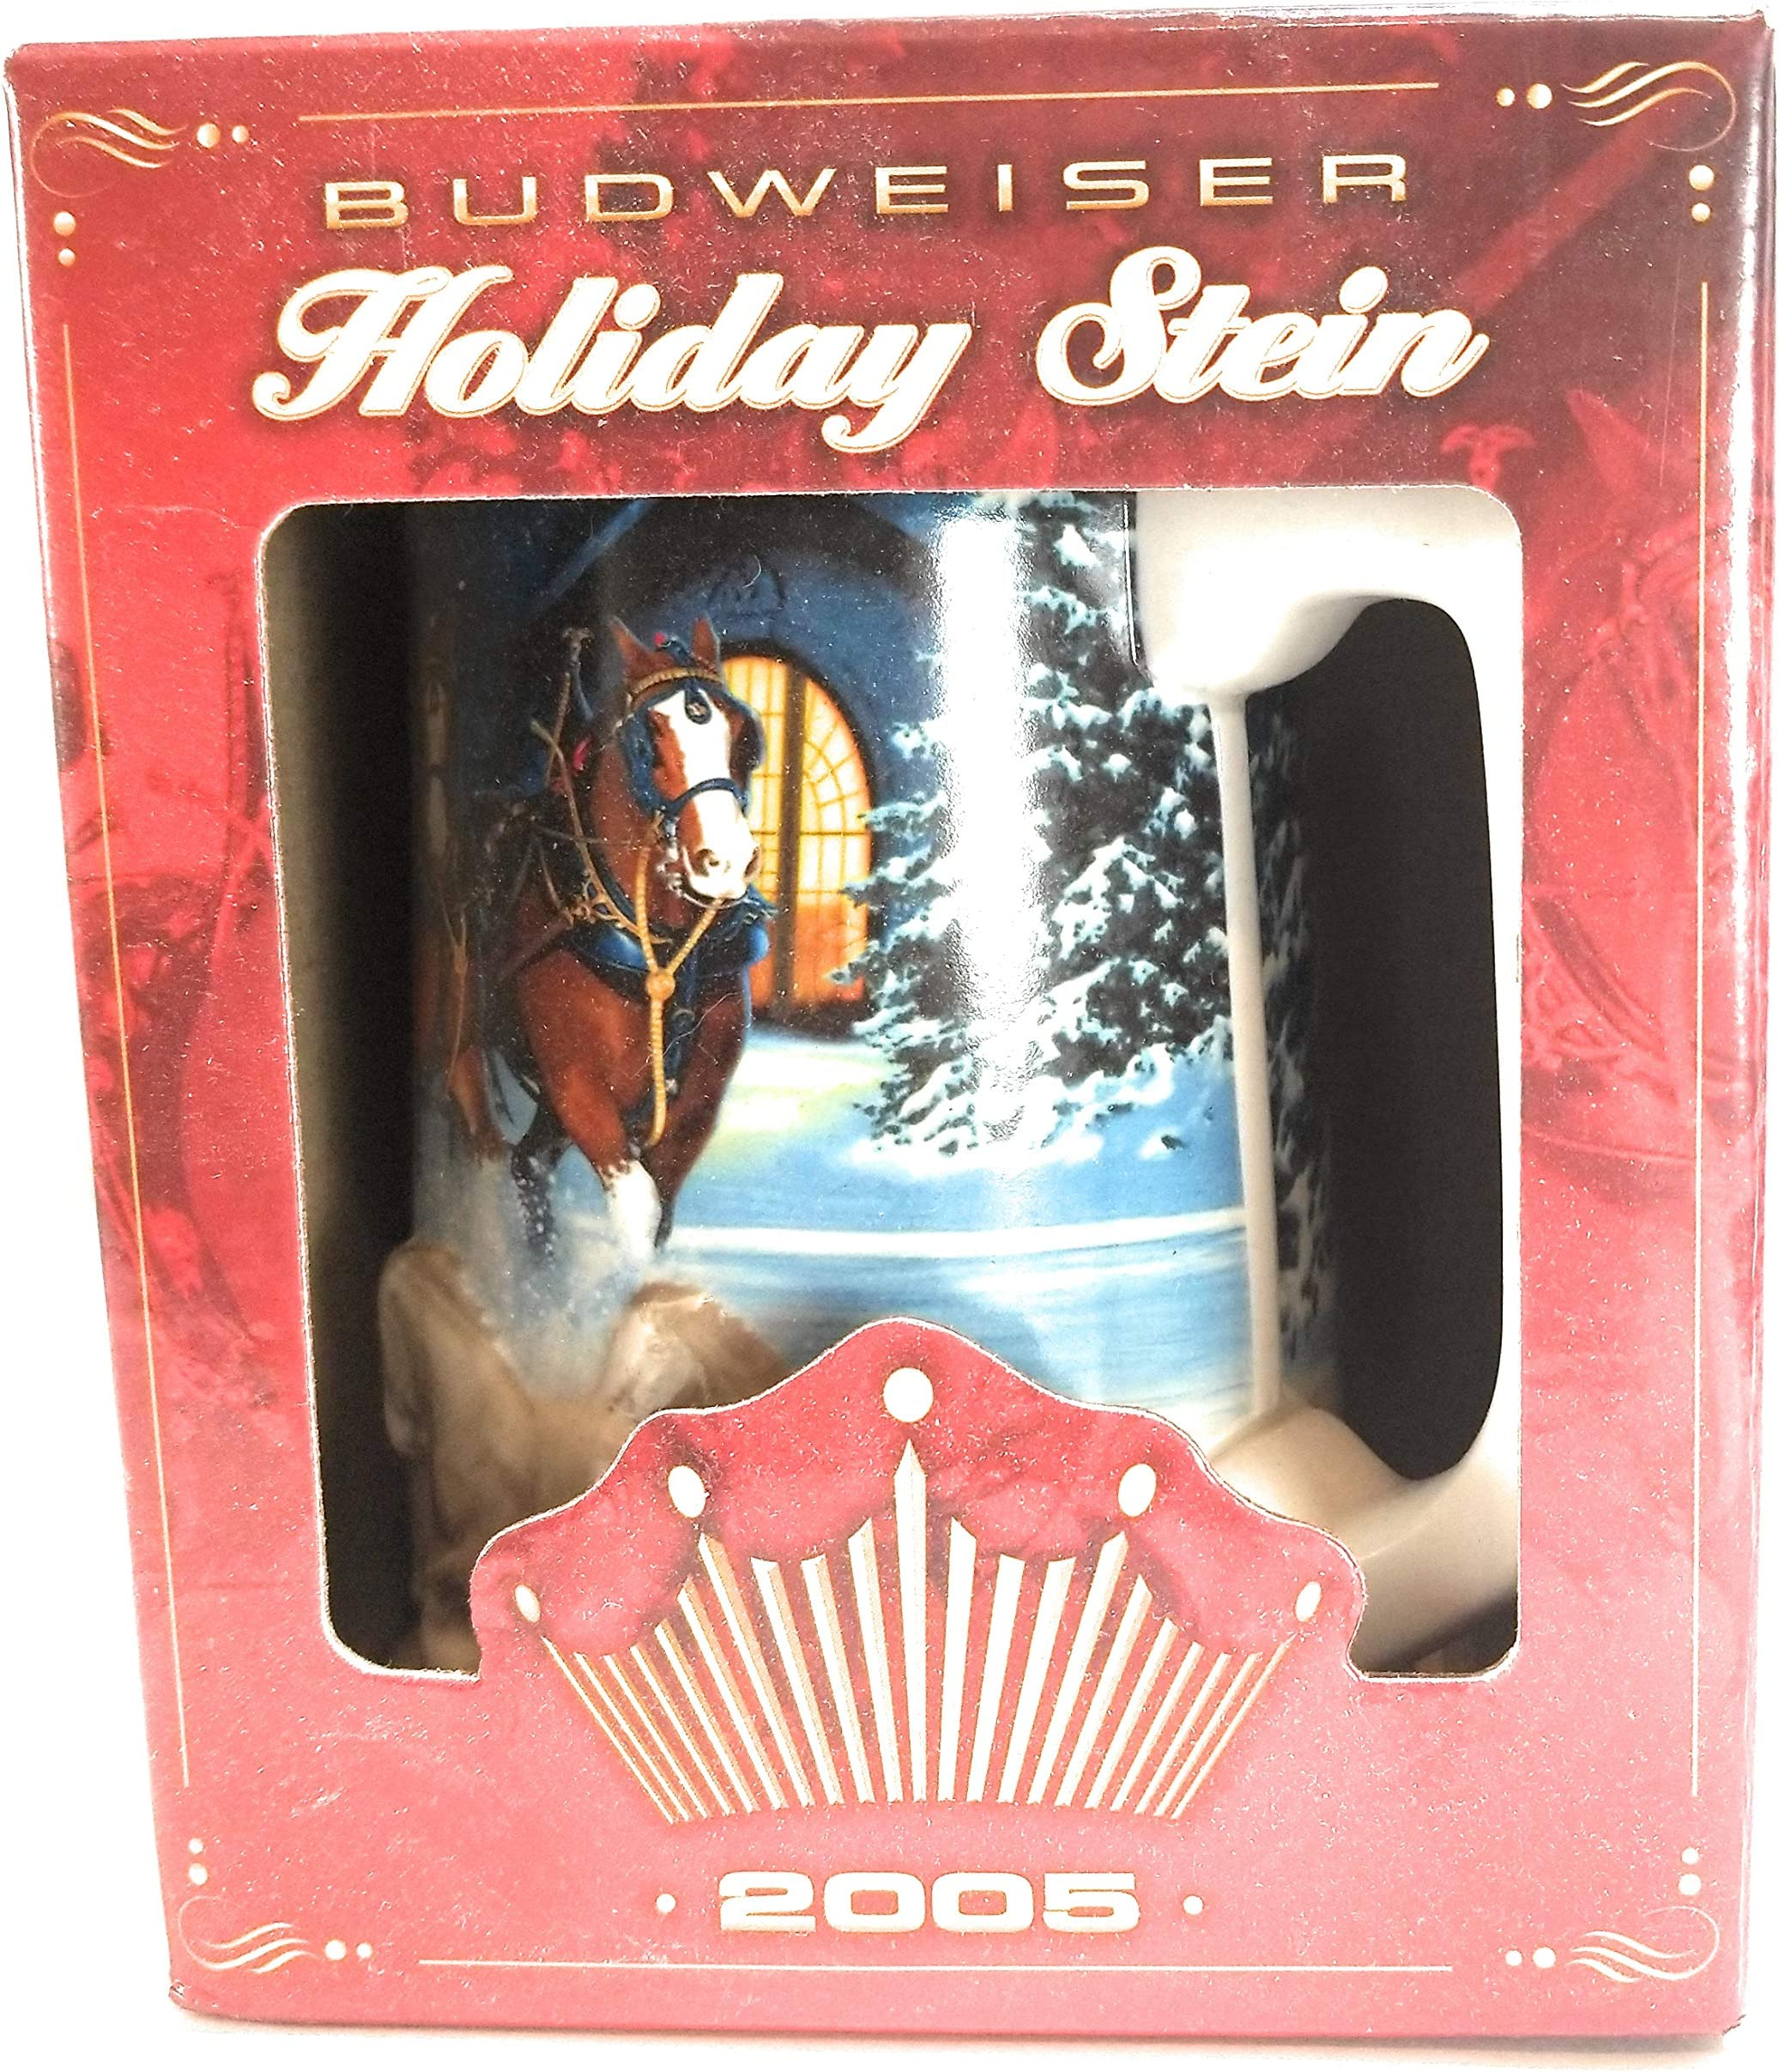 2005 Budweiser Clydesdale Collectible Holiday Beer Stein